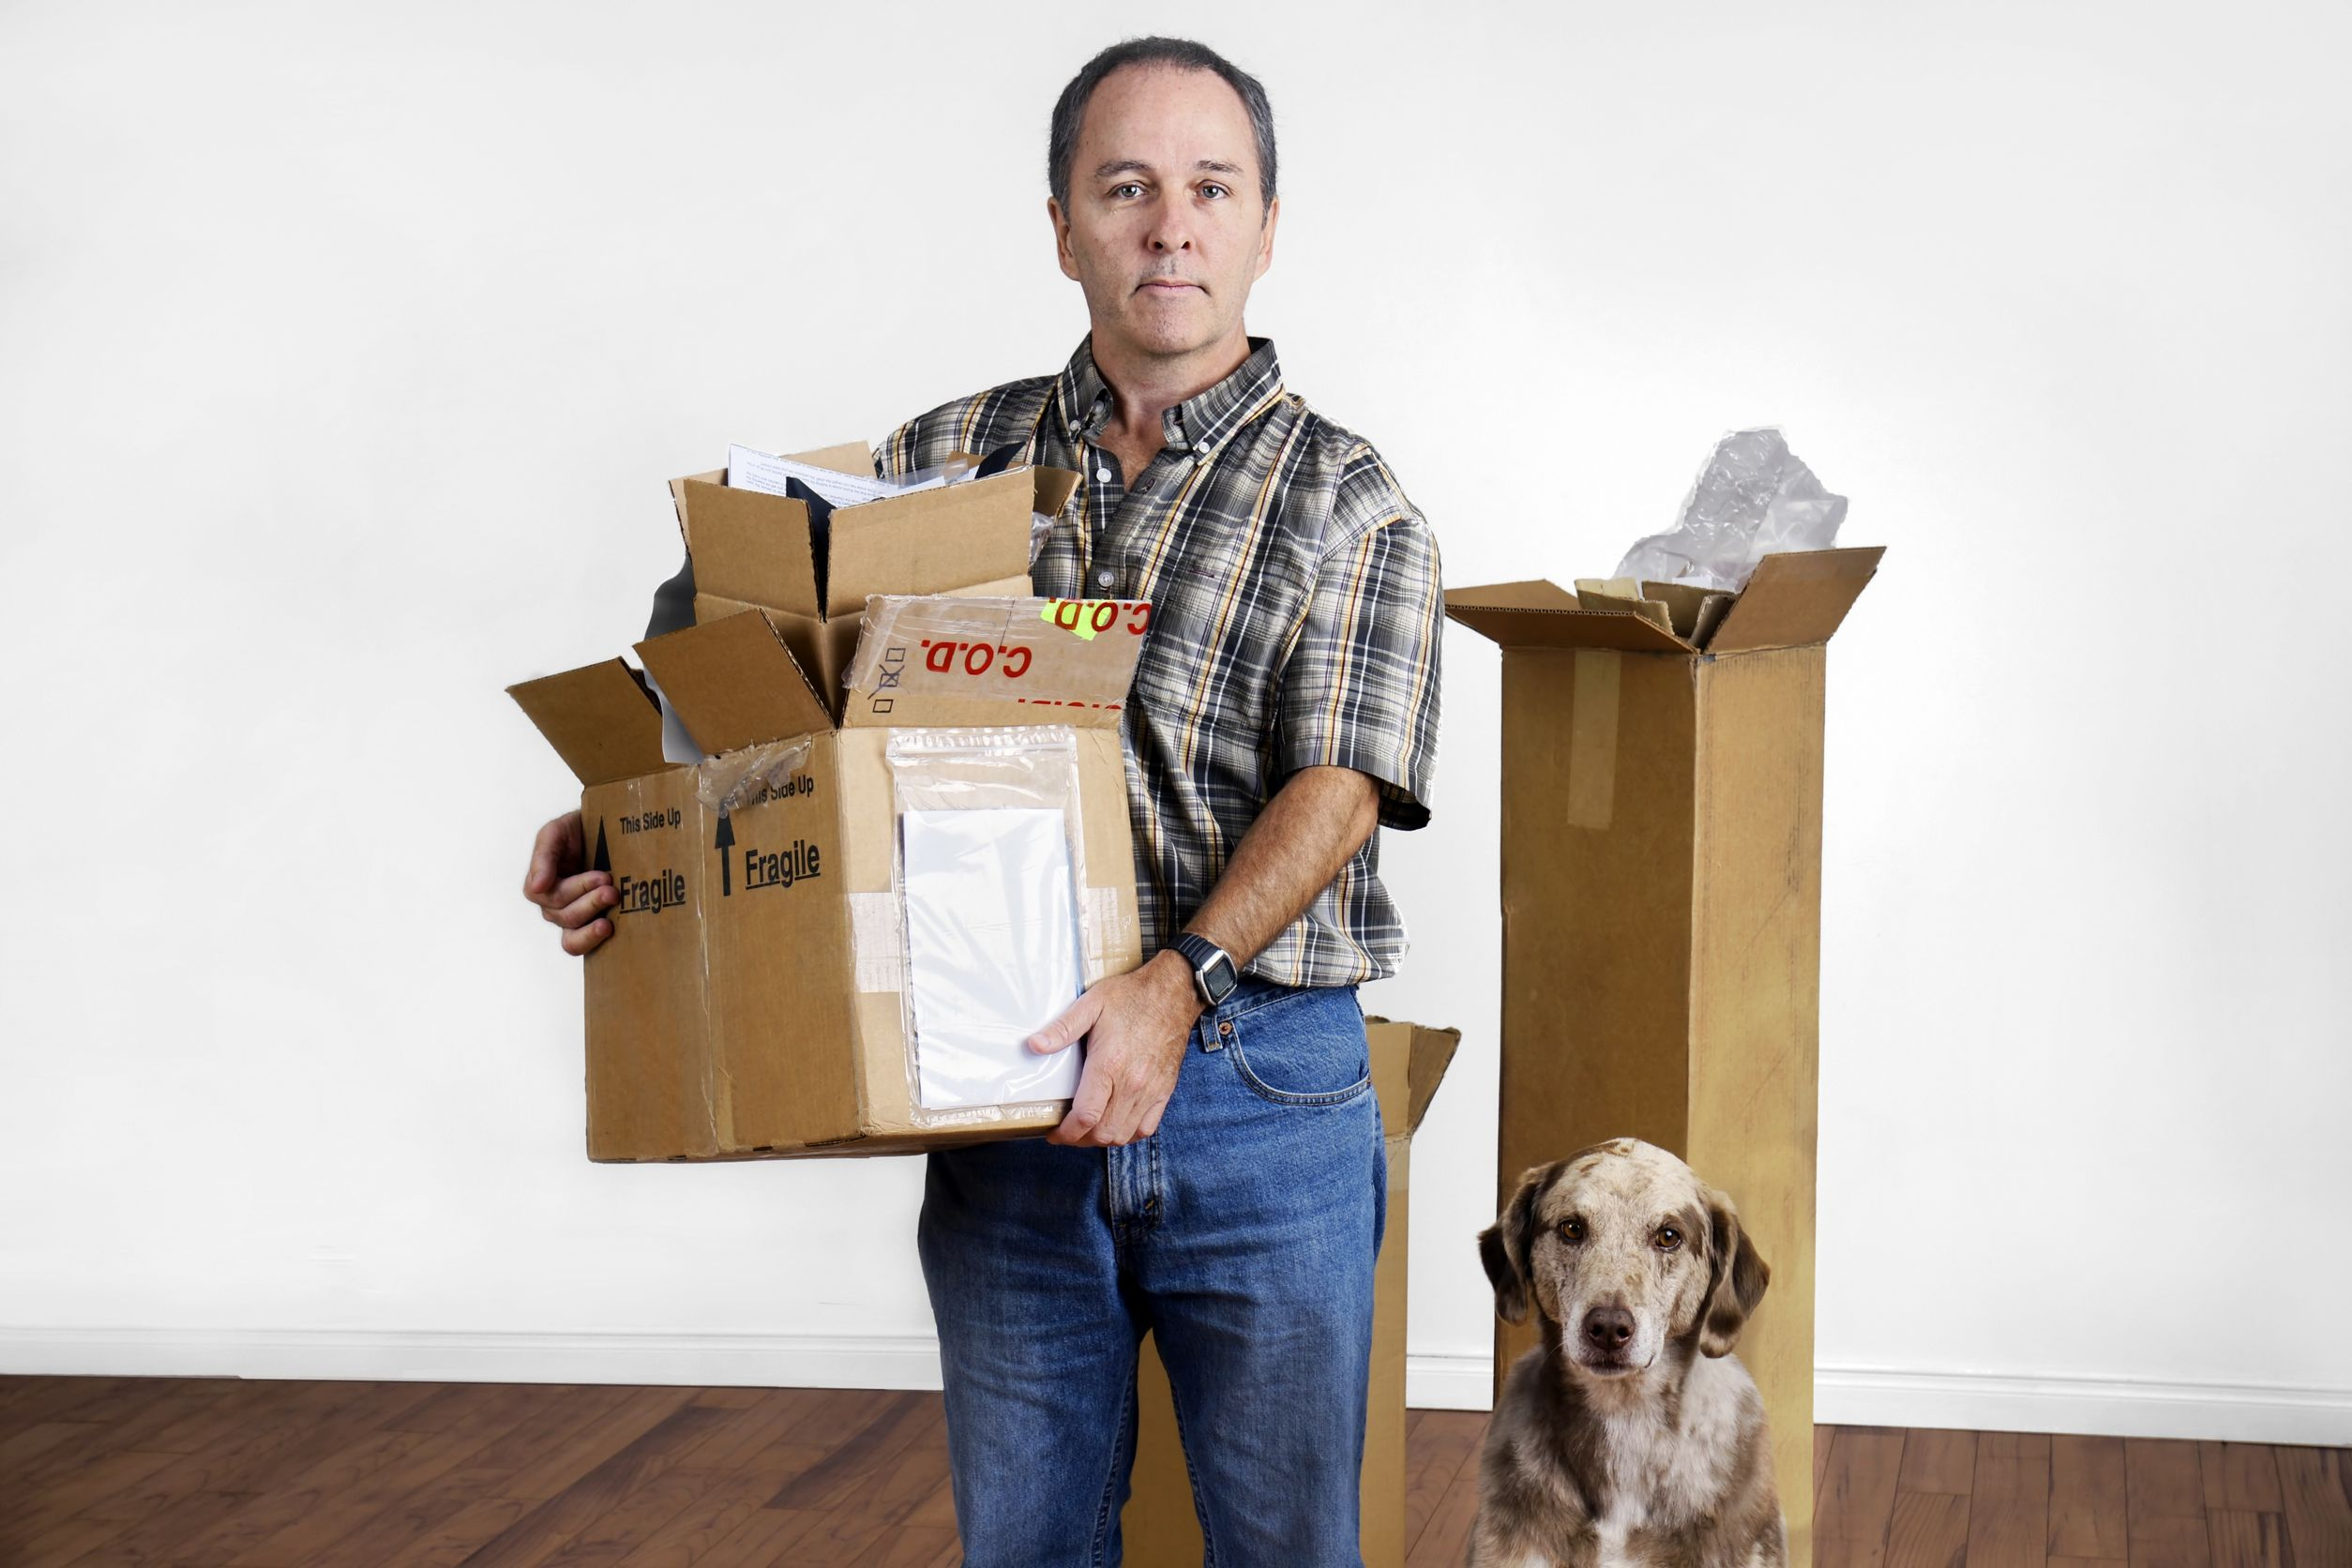 Professional pet movers